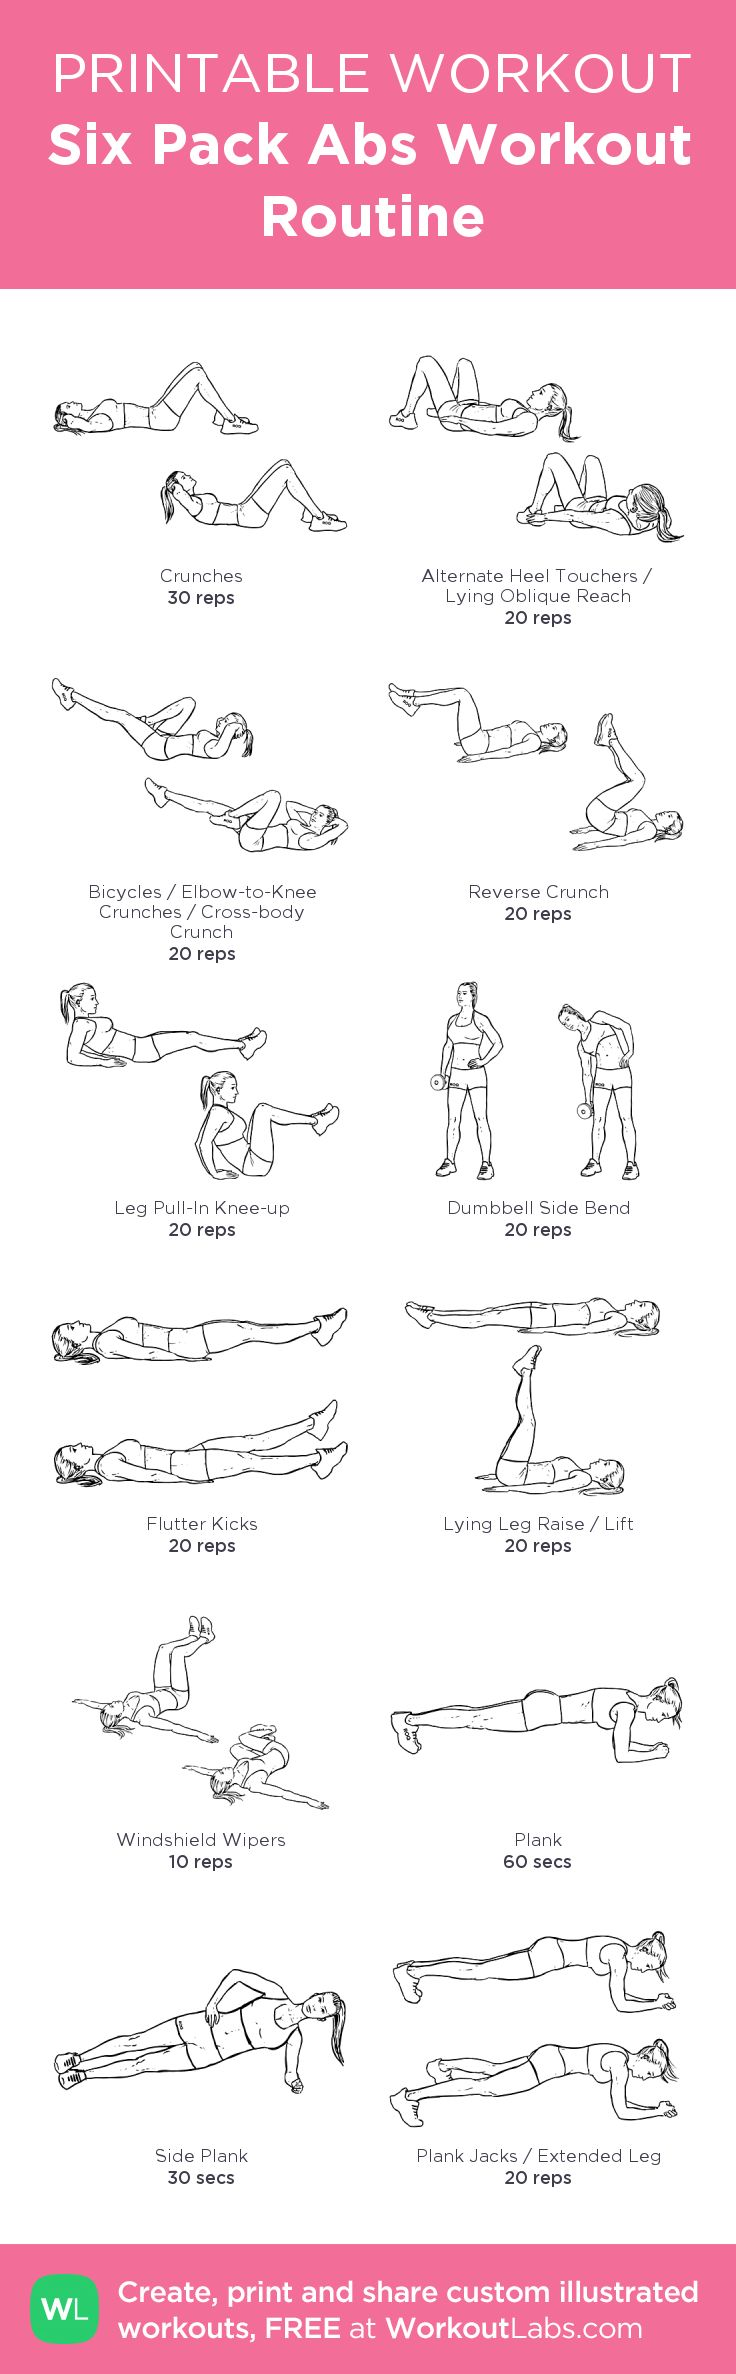 Six Pack Abs Workout Routine: my visual workout created at WorkoutLabs.com • Click through to customize and download as a FREE PDF! #customworkout